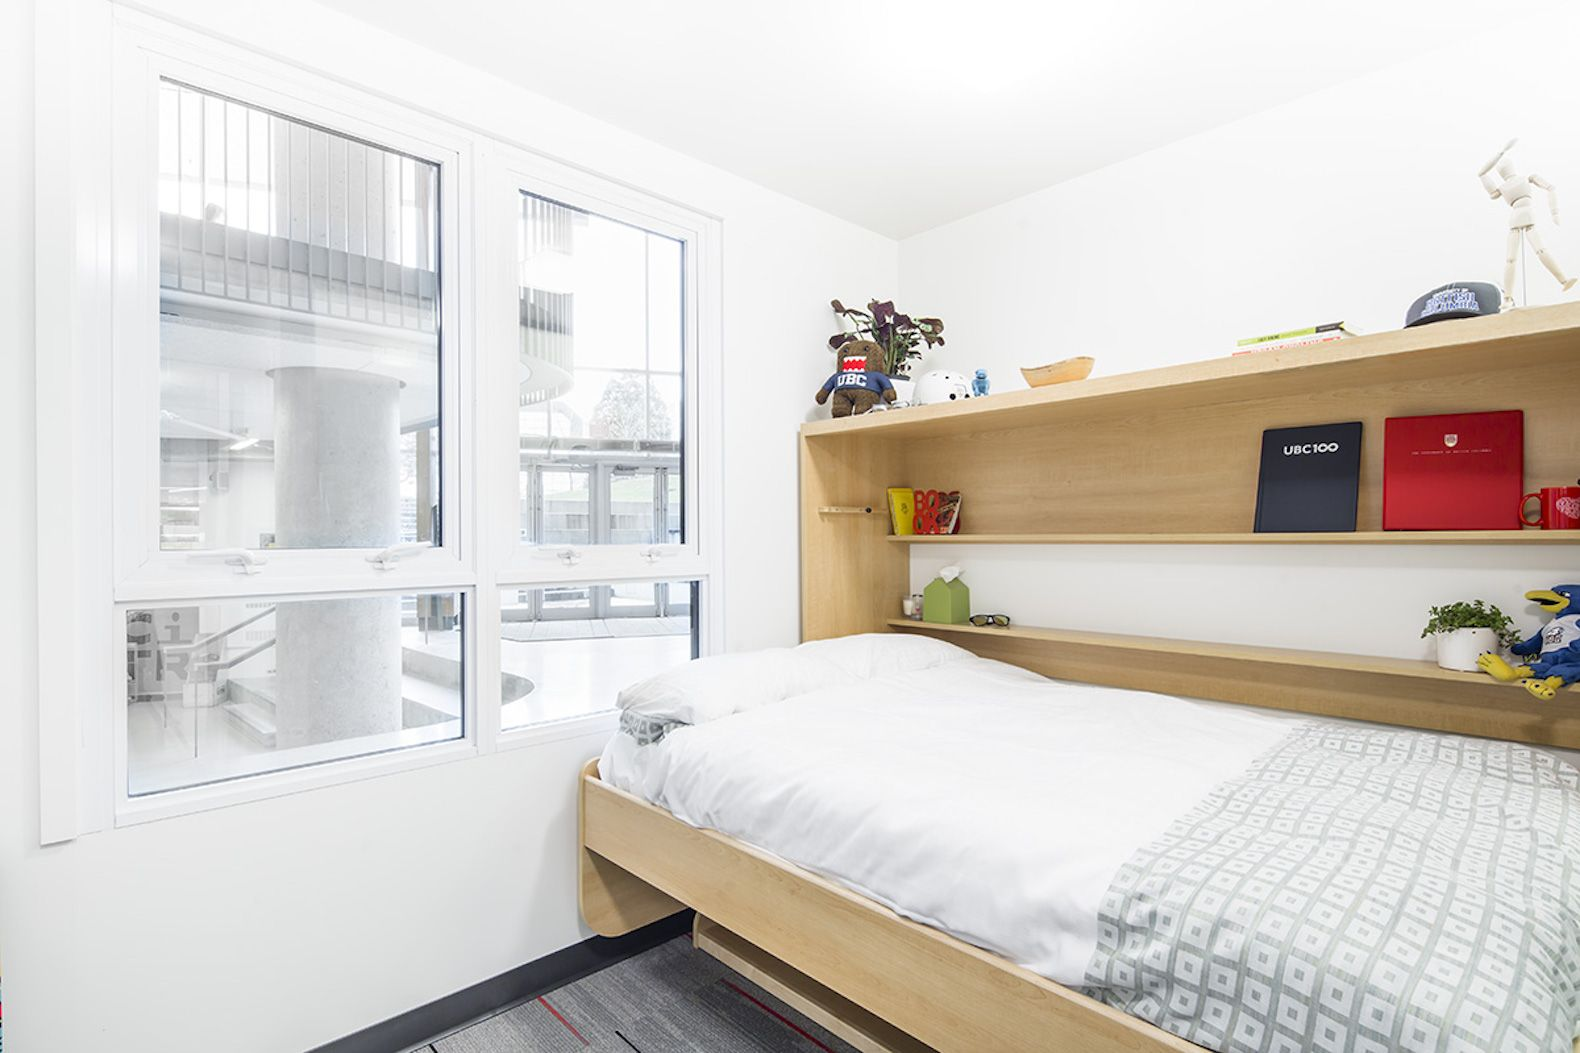 UBC's Nano Studios to offer affordable microapartments